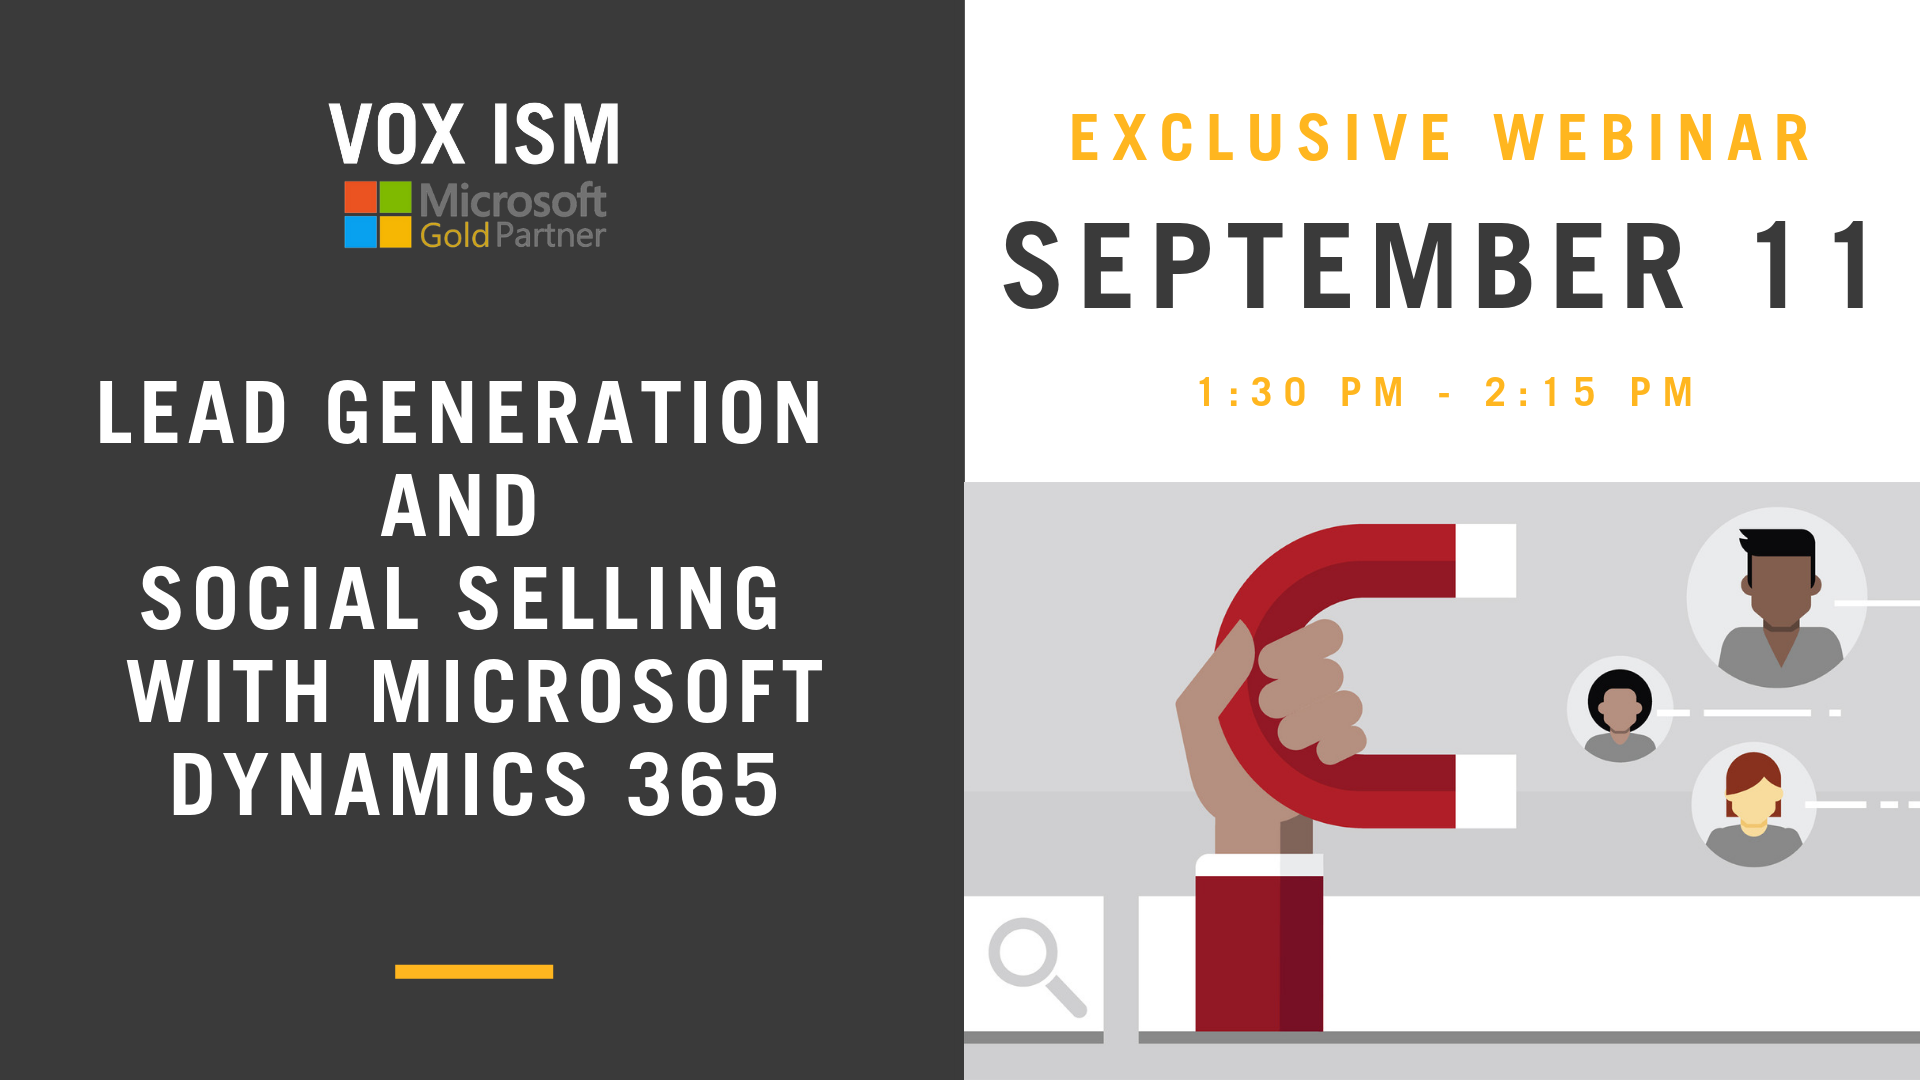 Lead Generation and Social Selling With Microsoft Dynamics 365 - September 11 - Webinar - VOX ISM